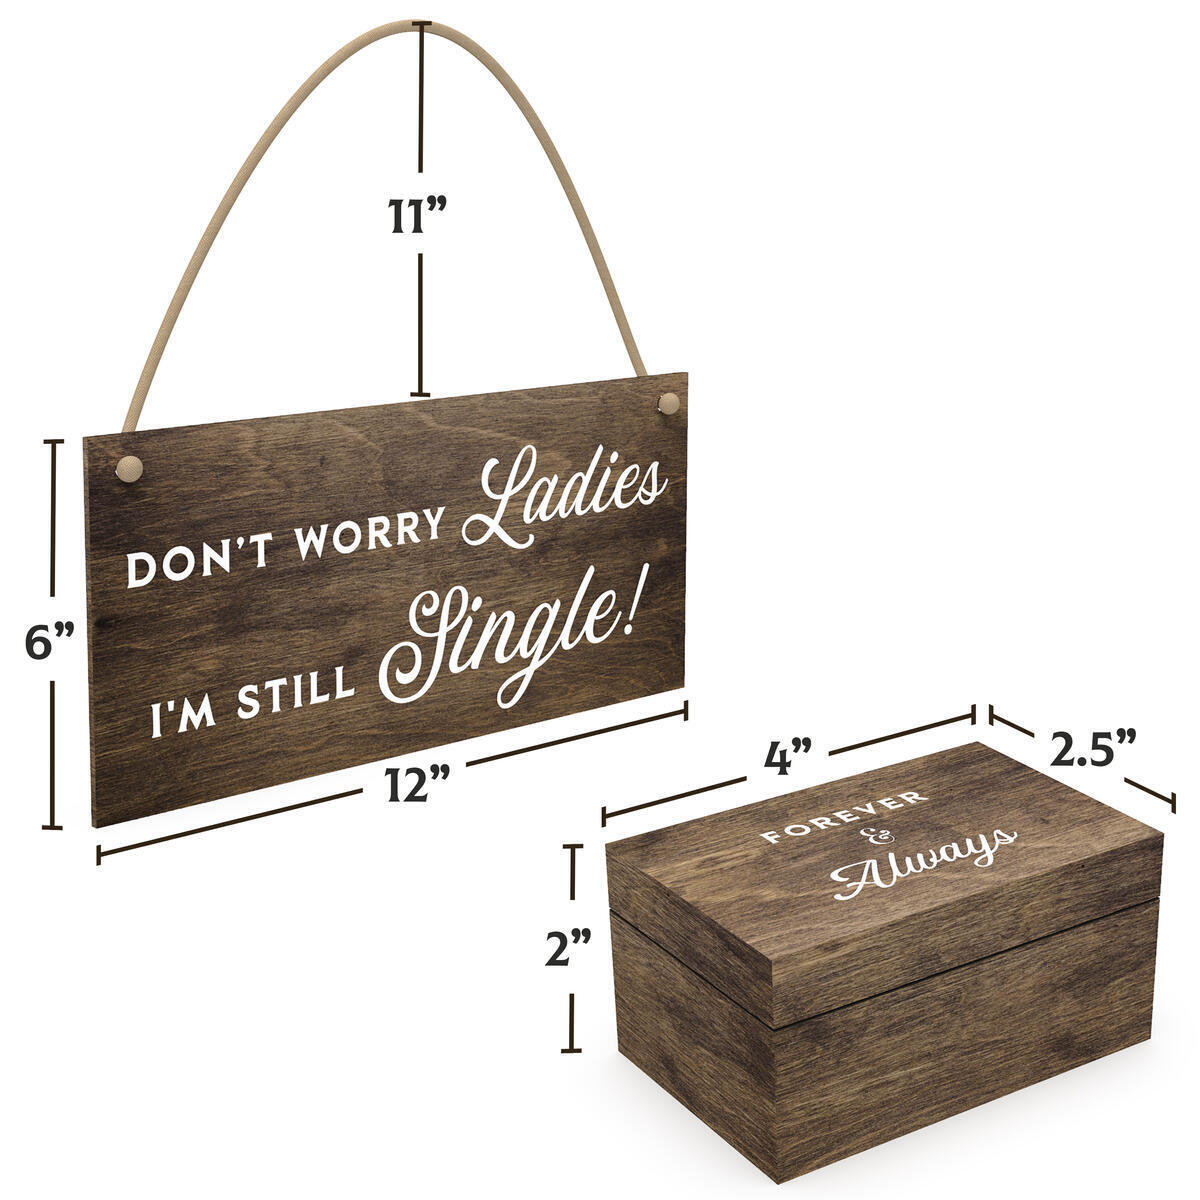 Ring Bearer Gift Set by Stache & Sons